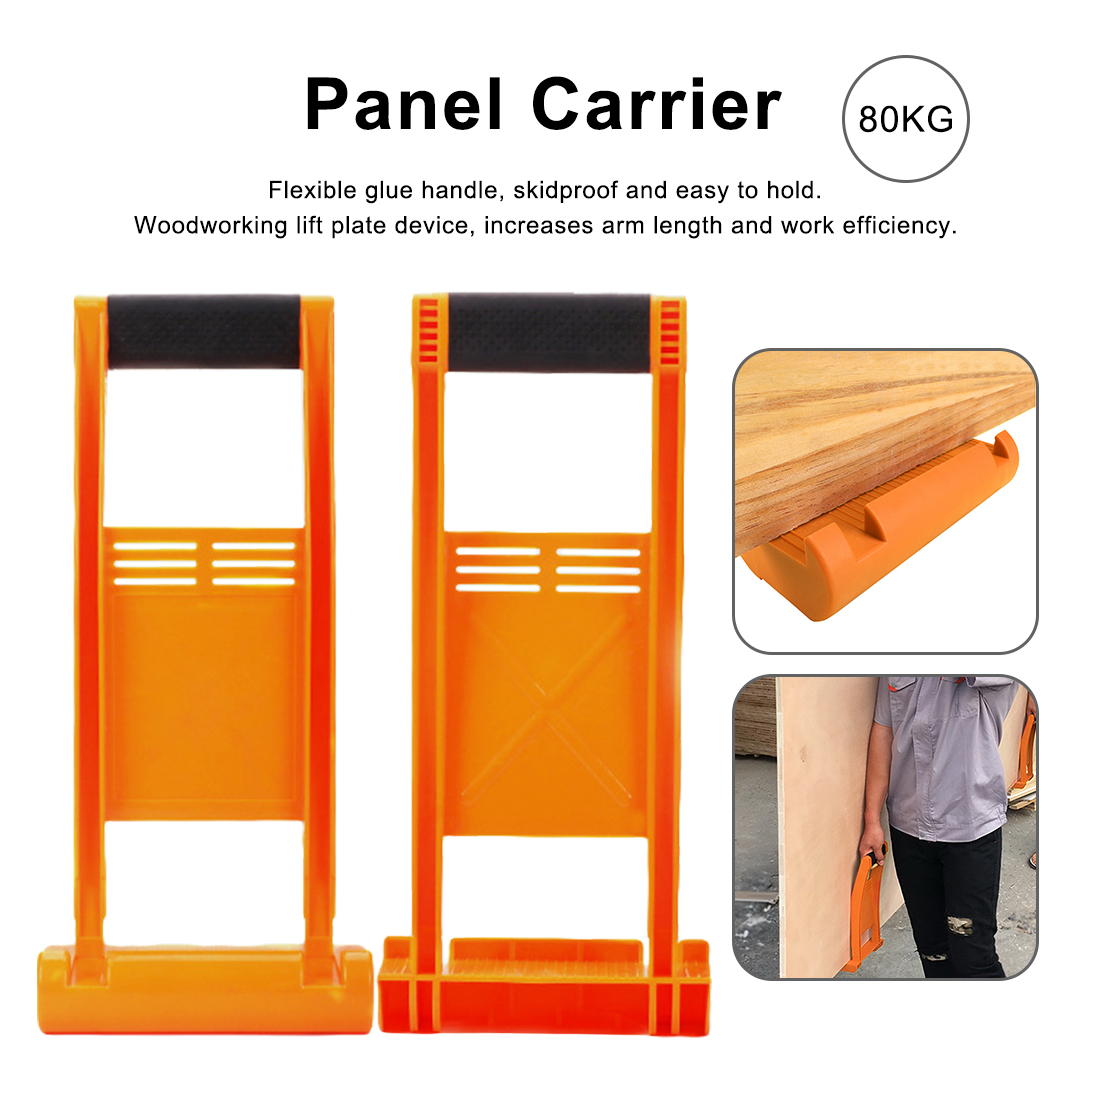 1pcs 80kg Load Tool Panel Carrier Gripper Handle Carry Drywall Plywood Sheet ABS For Carrying Glass Plate Gypsum Board